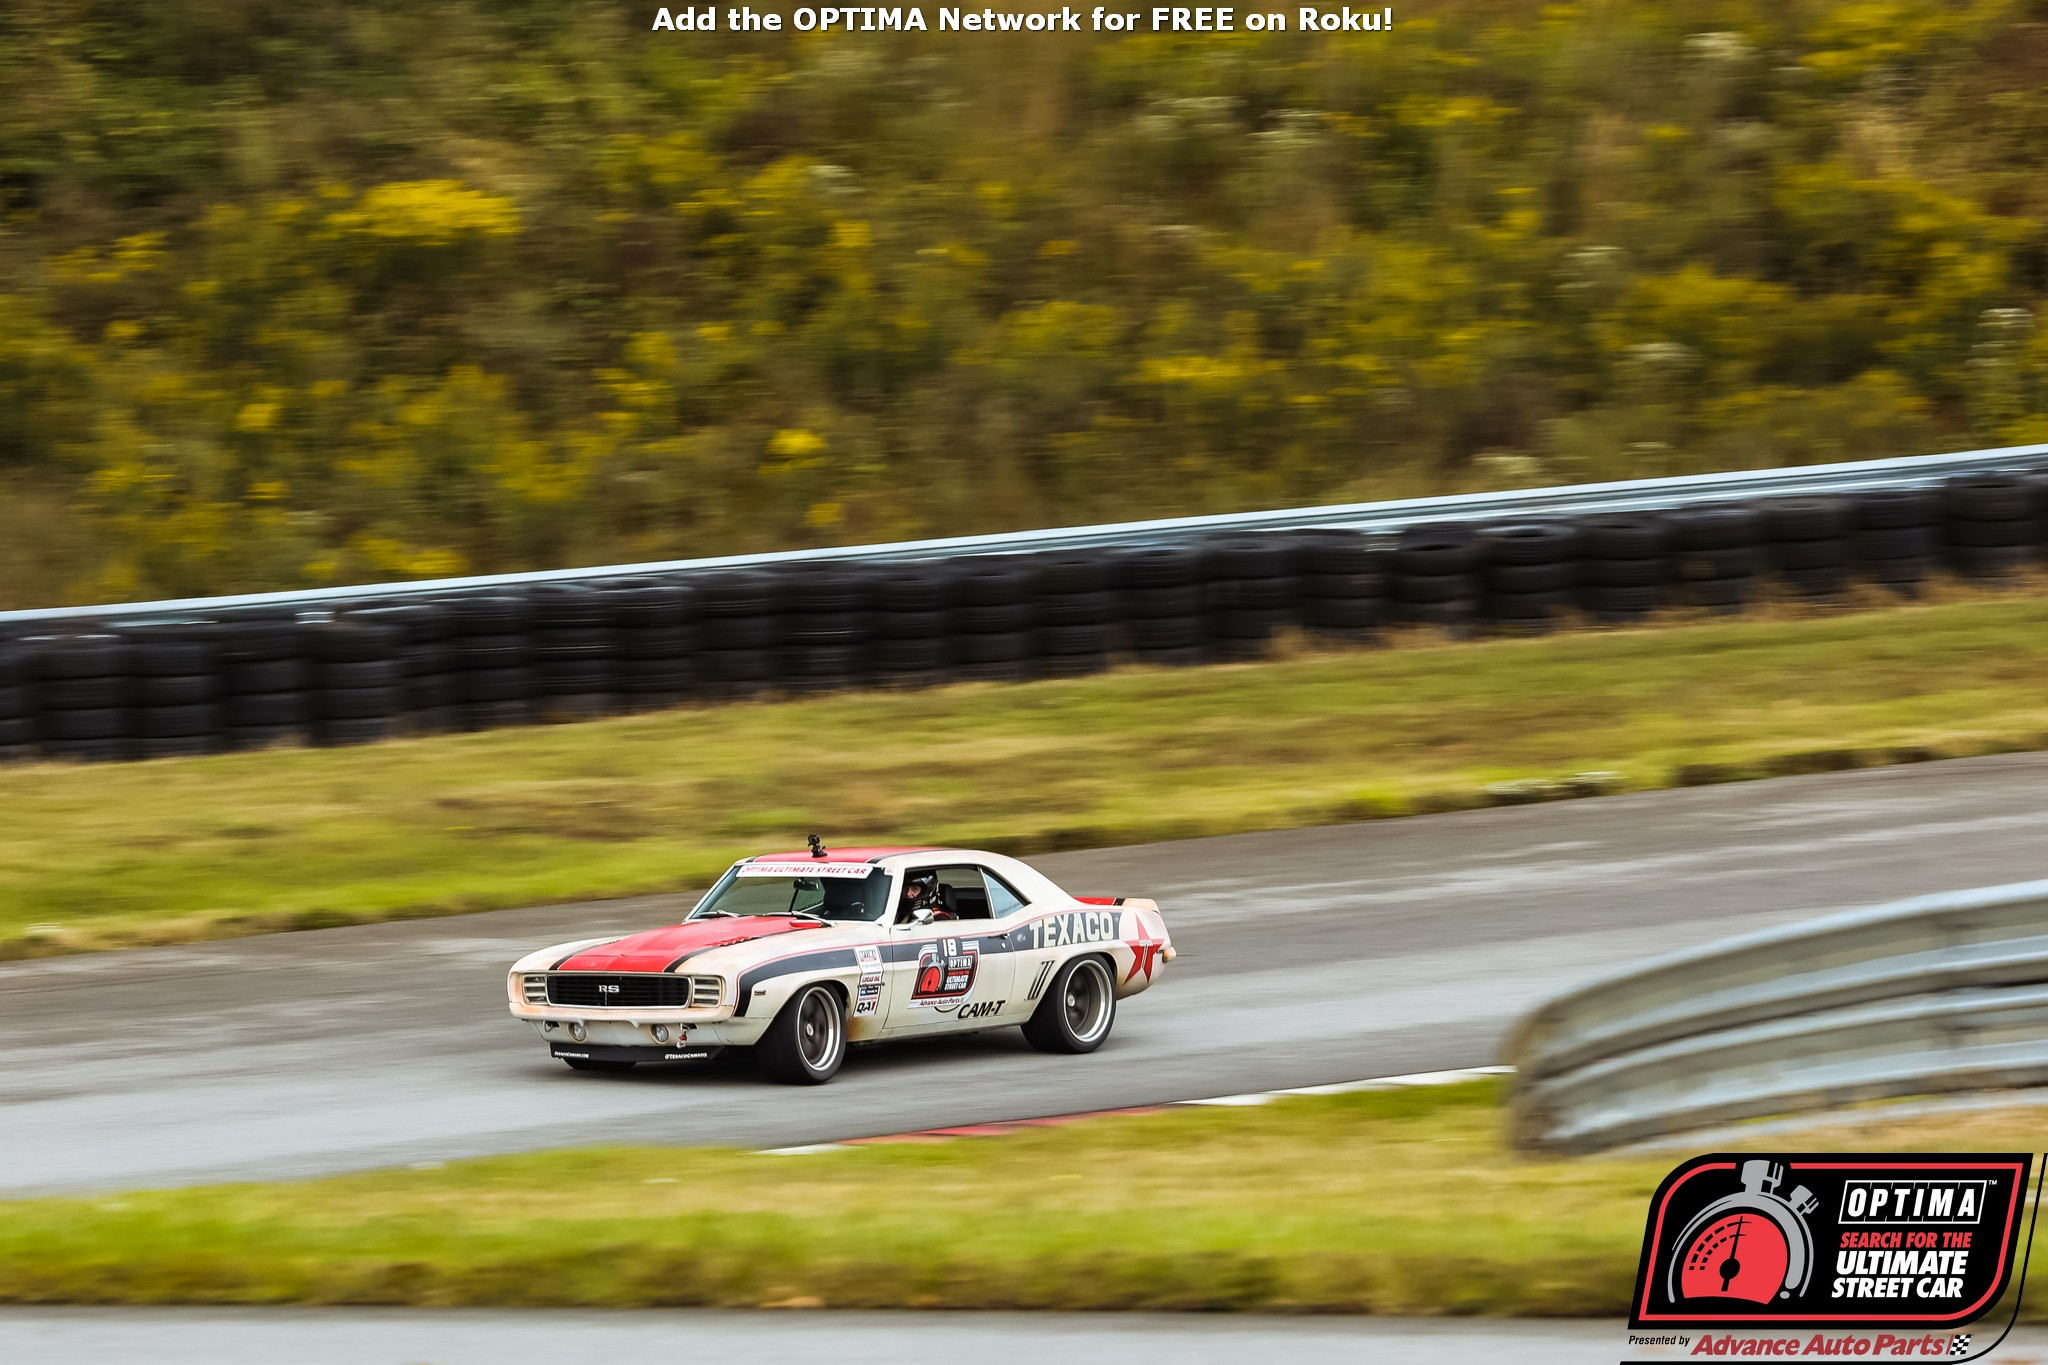 Part Two: Optima's Wet Search For The Ultimate Street Car Continues With Real Street Cars Racing In The Rain